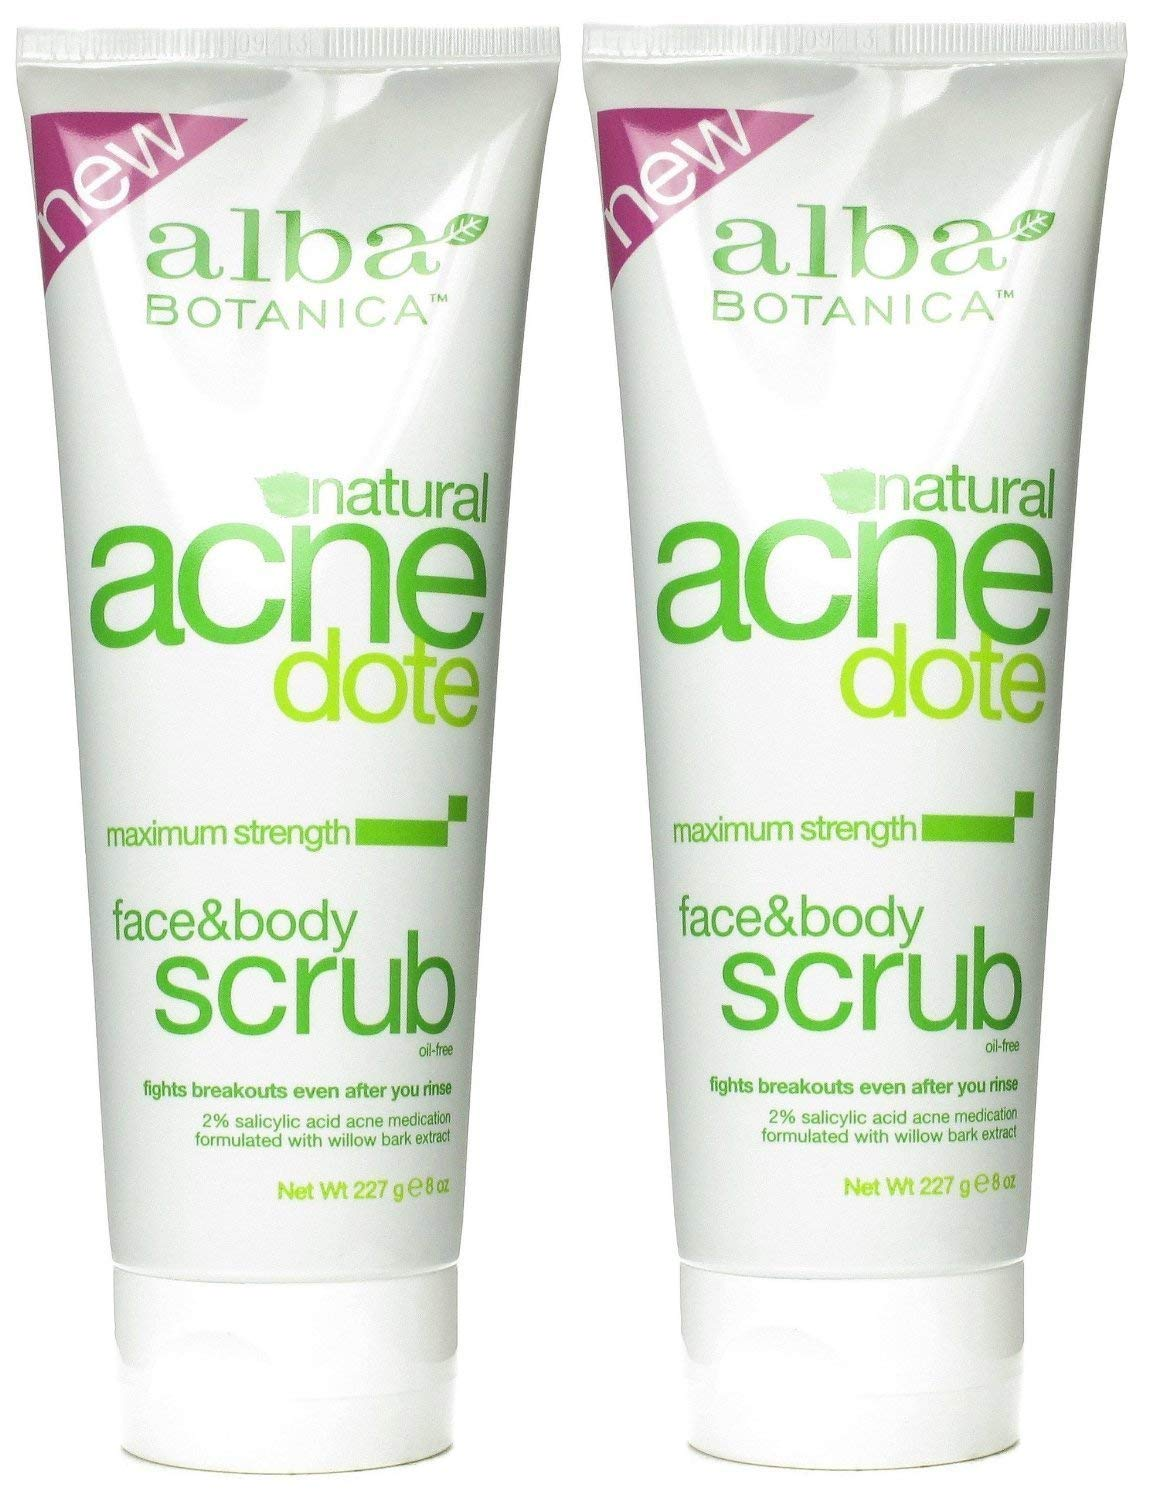 Alba Botanica ACNEdote Face & Body Scrub, 8 Ounces Tube (Pack of 2) by Alba Botanica